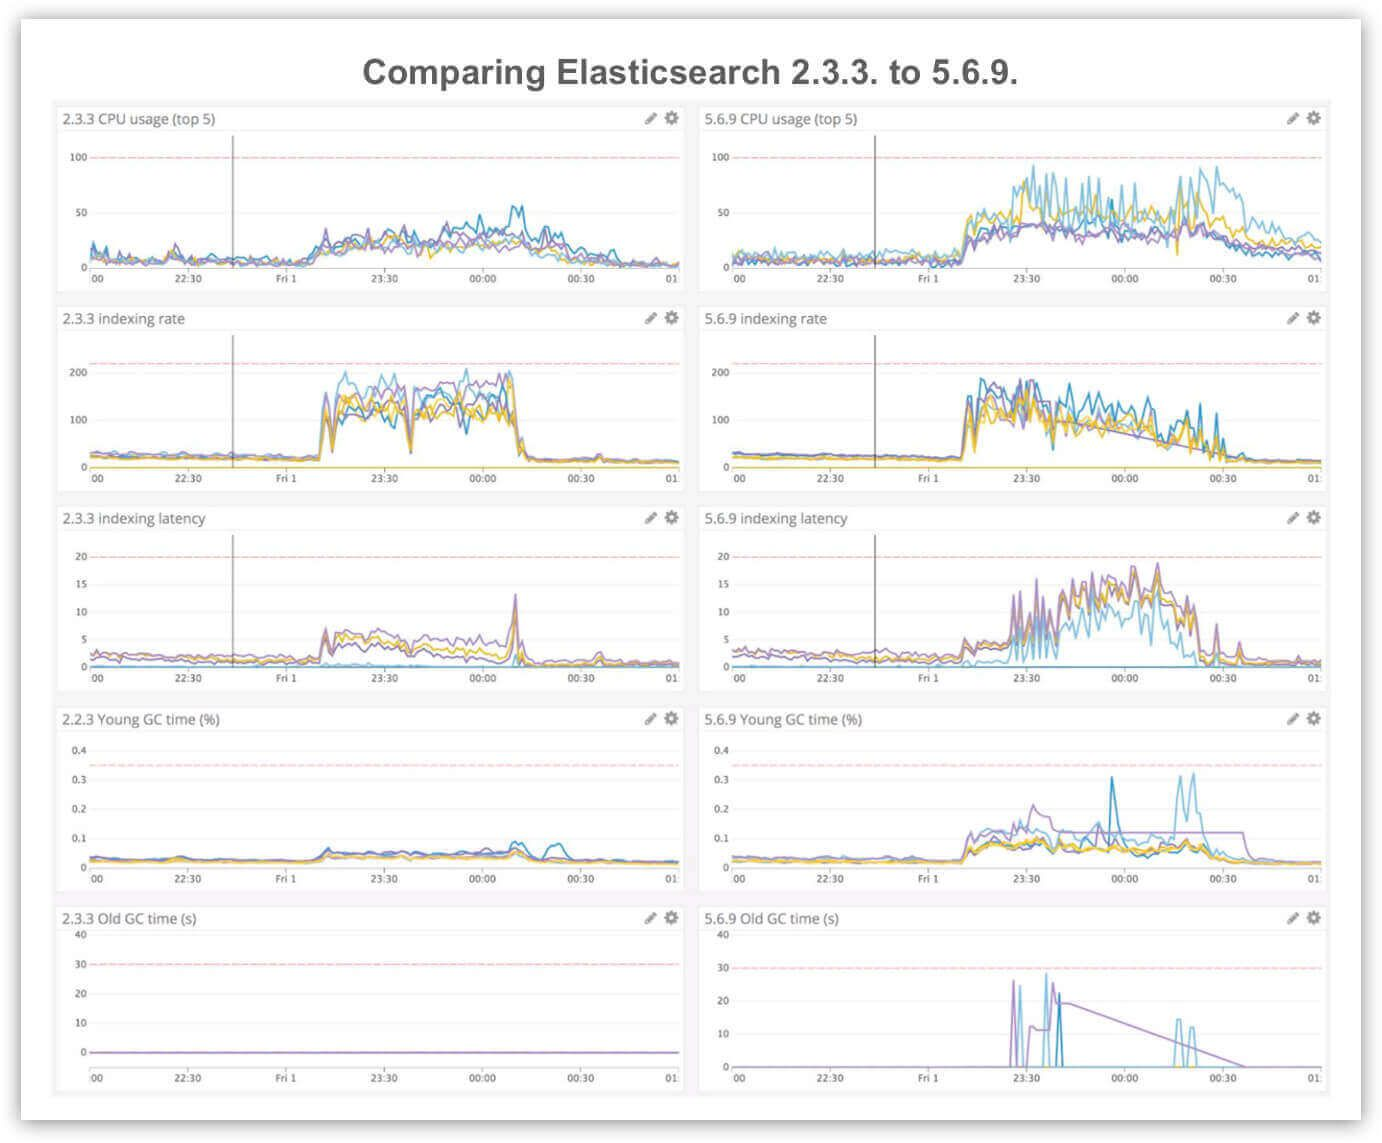 Graphs showing performance regression from the Elasticsearch 2.3.3. to 5.6.9. in CPU usage, indexing rate, indexing latency, young garbage collection time and old garbage collection time